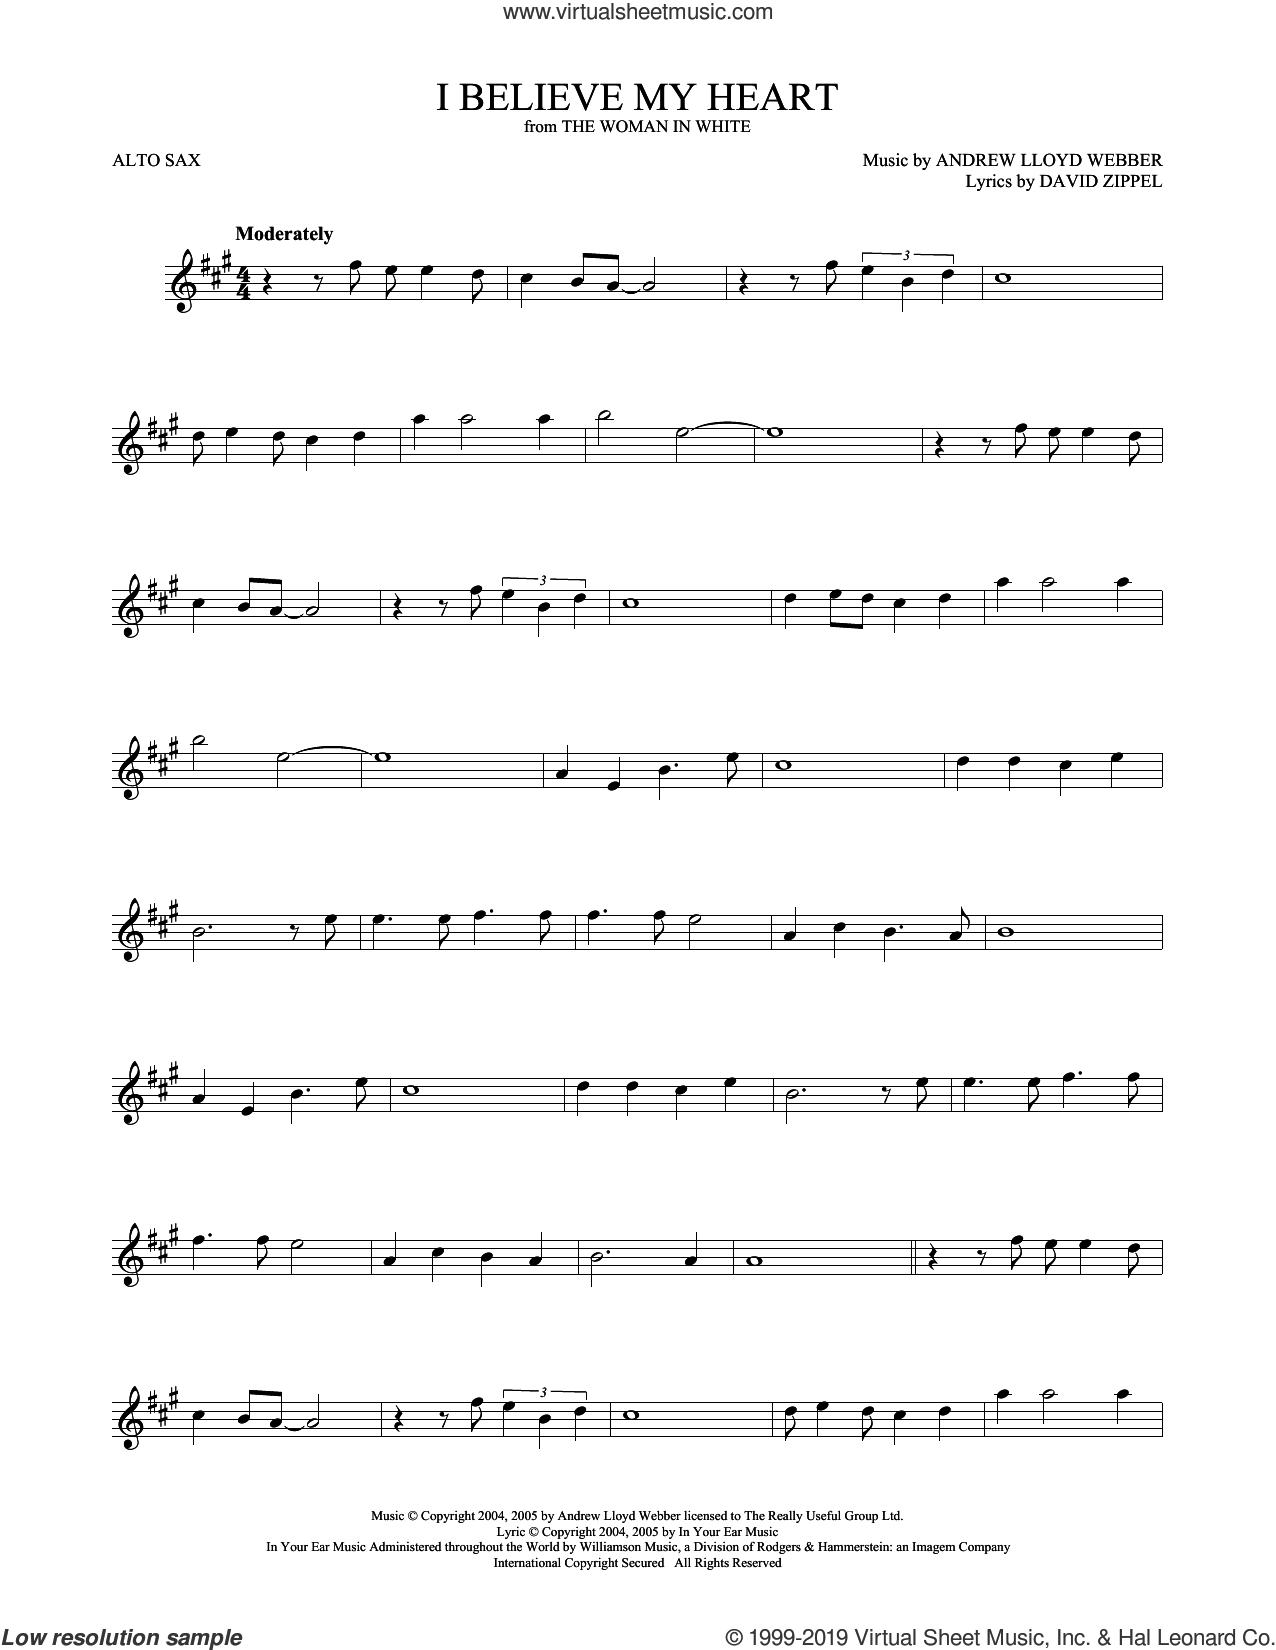 I Believe My Heart (from The Woman In White) sheet music for alto saxophone solo by Andrew Lloyd Webber and David Zippel, intermediate skill level